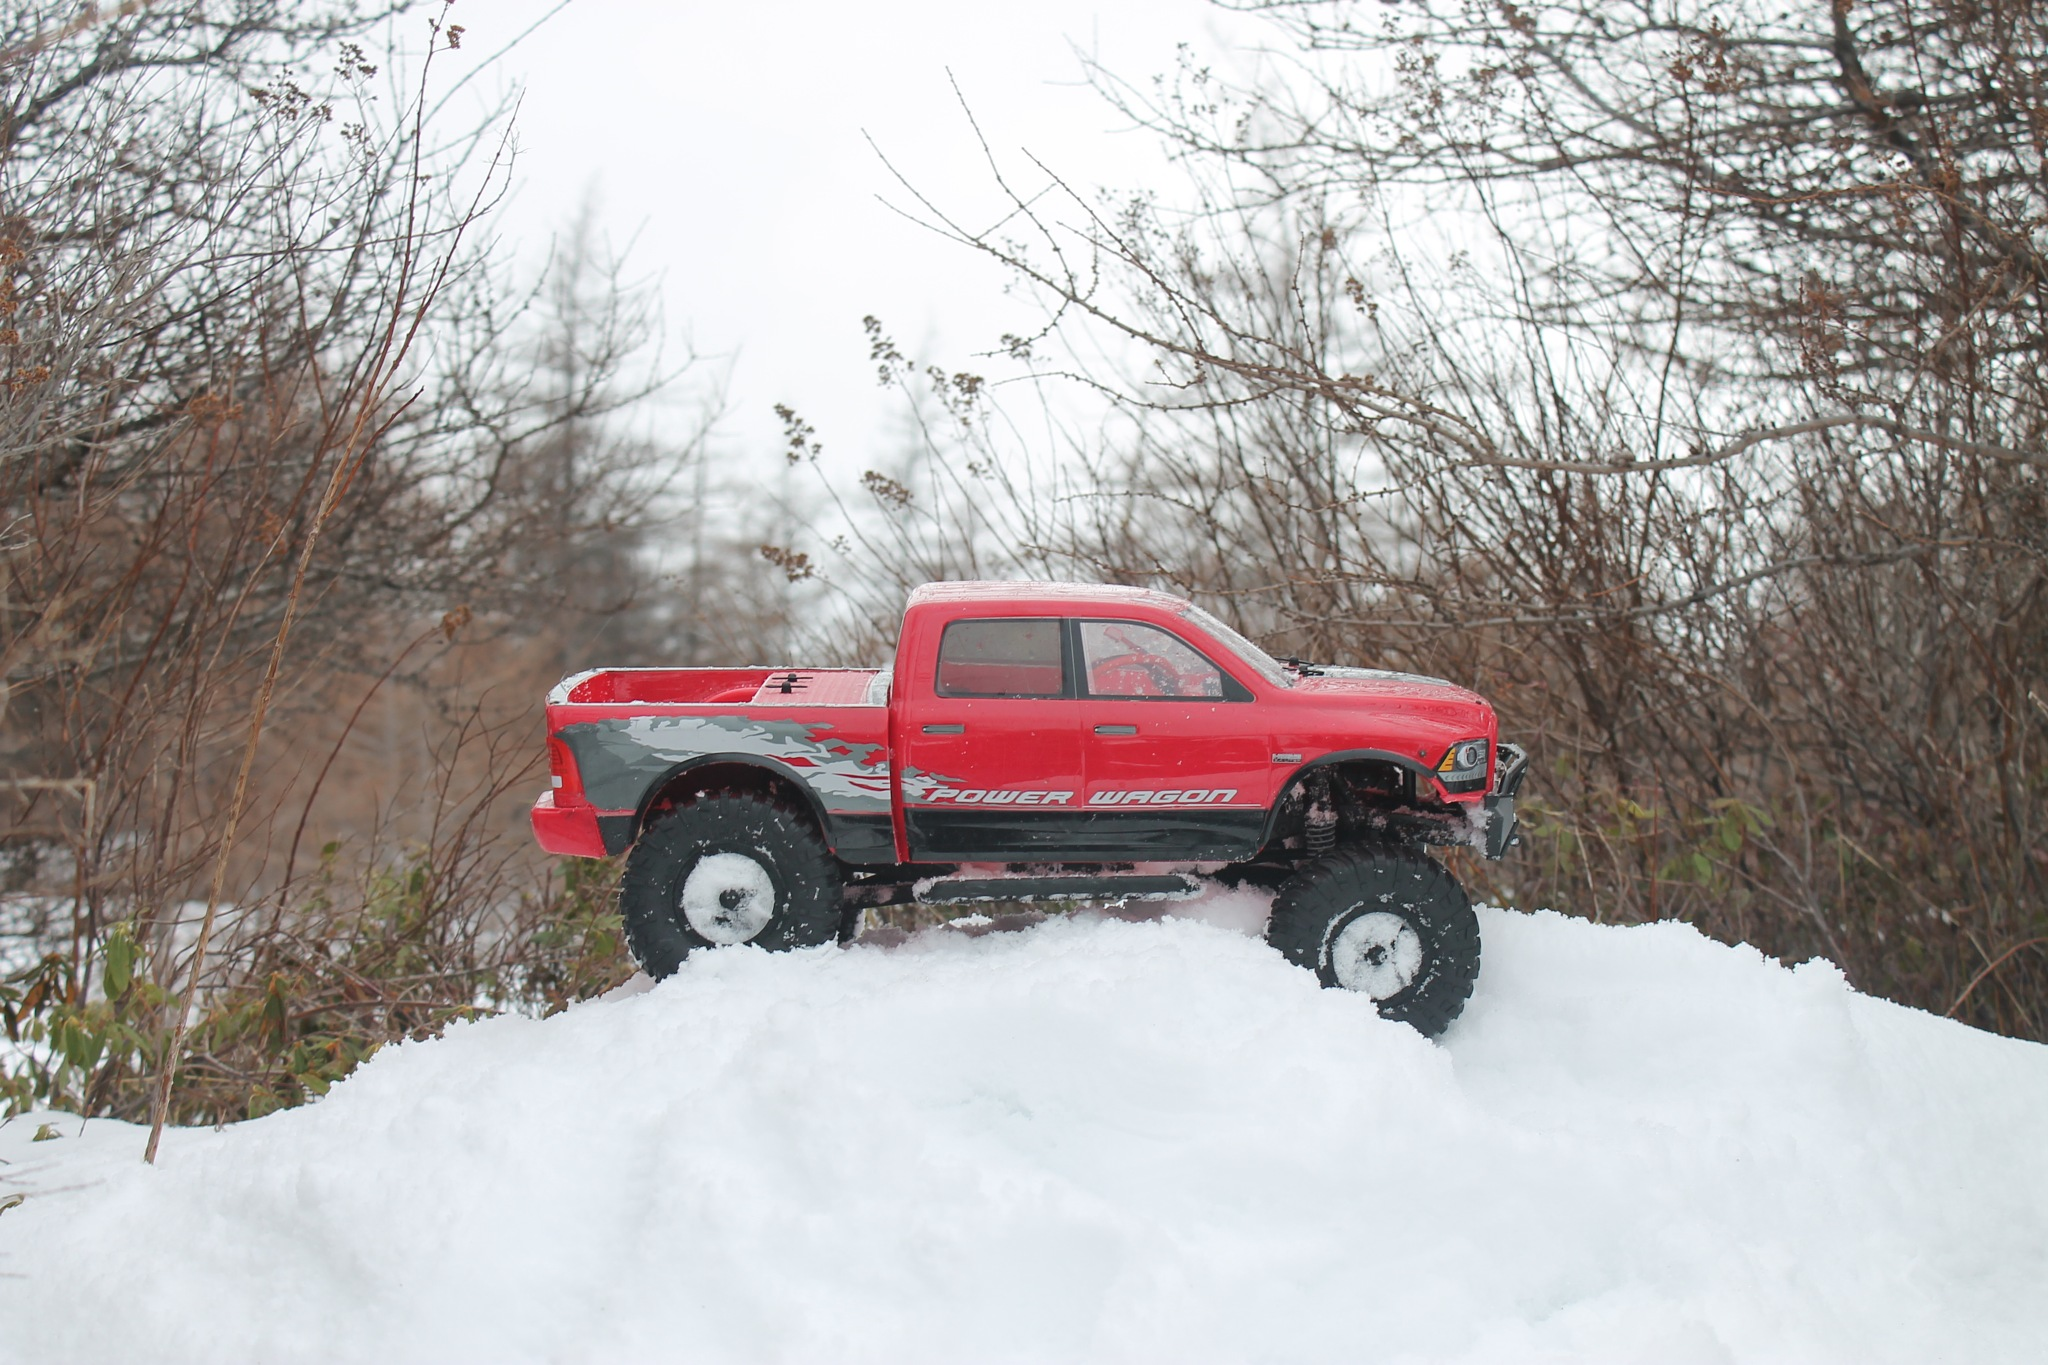 Outdoors With RC Truck by GraphicCard49